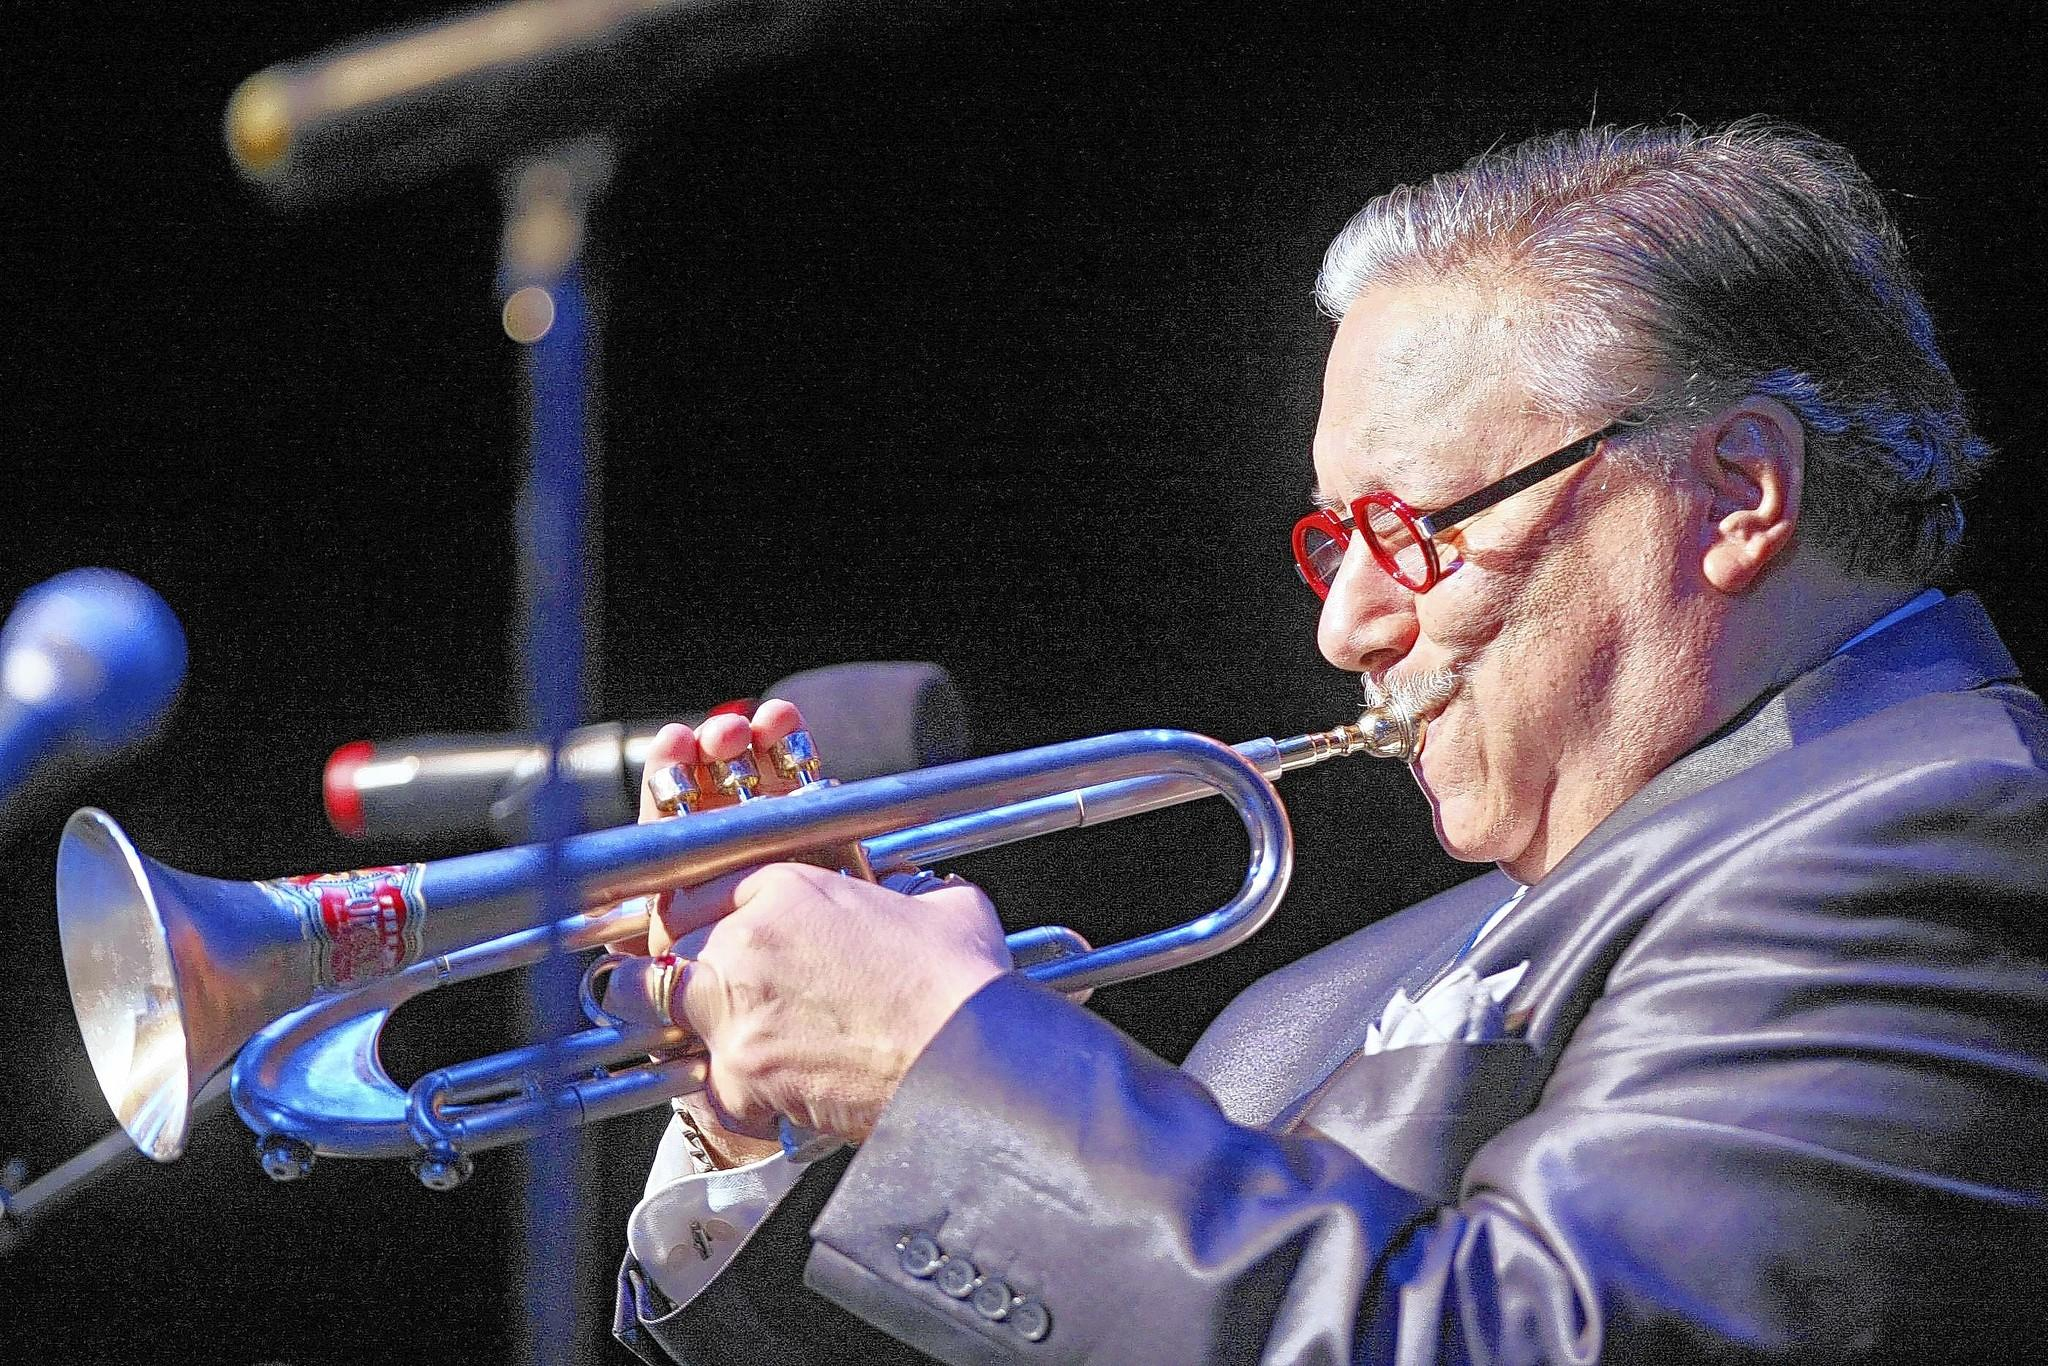 Musician Arturo Sandoval played a benefit concert for the Arturo Sandoval Institute, Glendale Arts and Glendale Education Foundation at the Alex Theatre in Glendale on Saturday, Feb. 15, 2014.